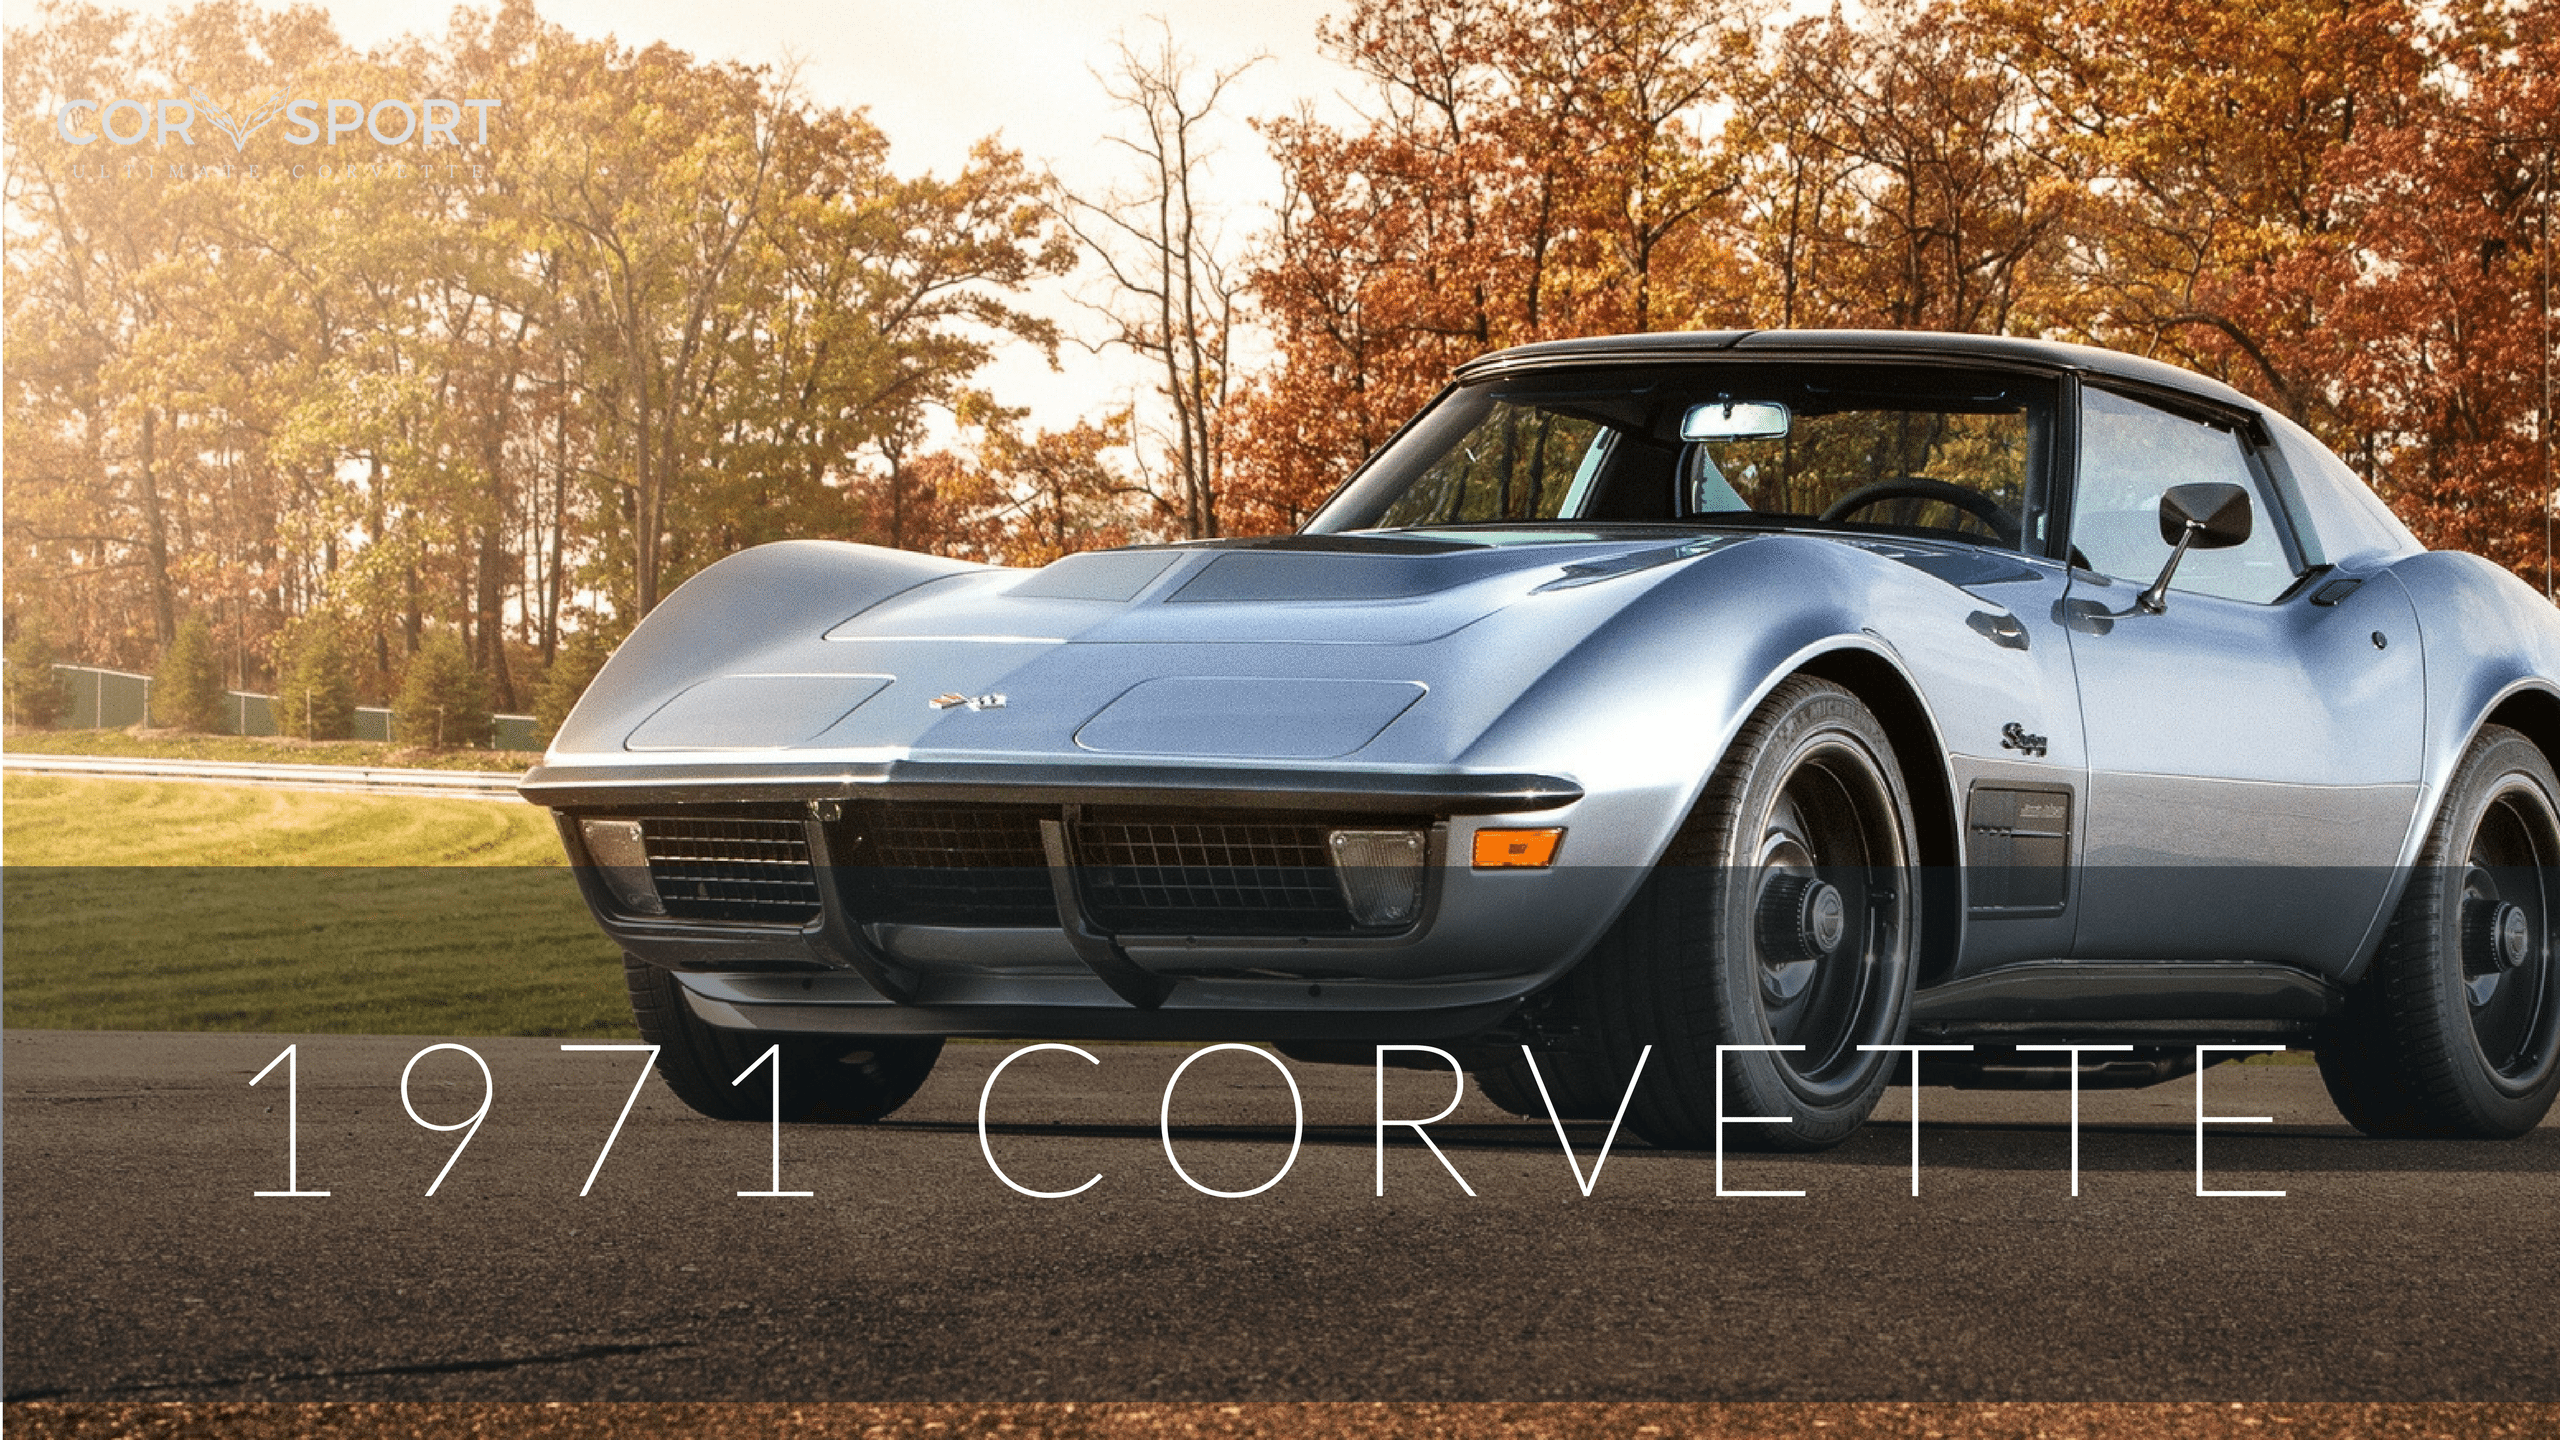 1971 c3 corvette ultimate guide overview specs vin info rh corvsport com